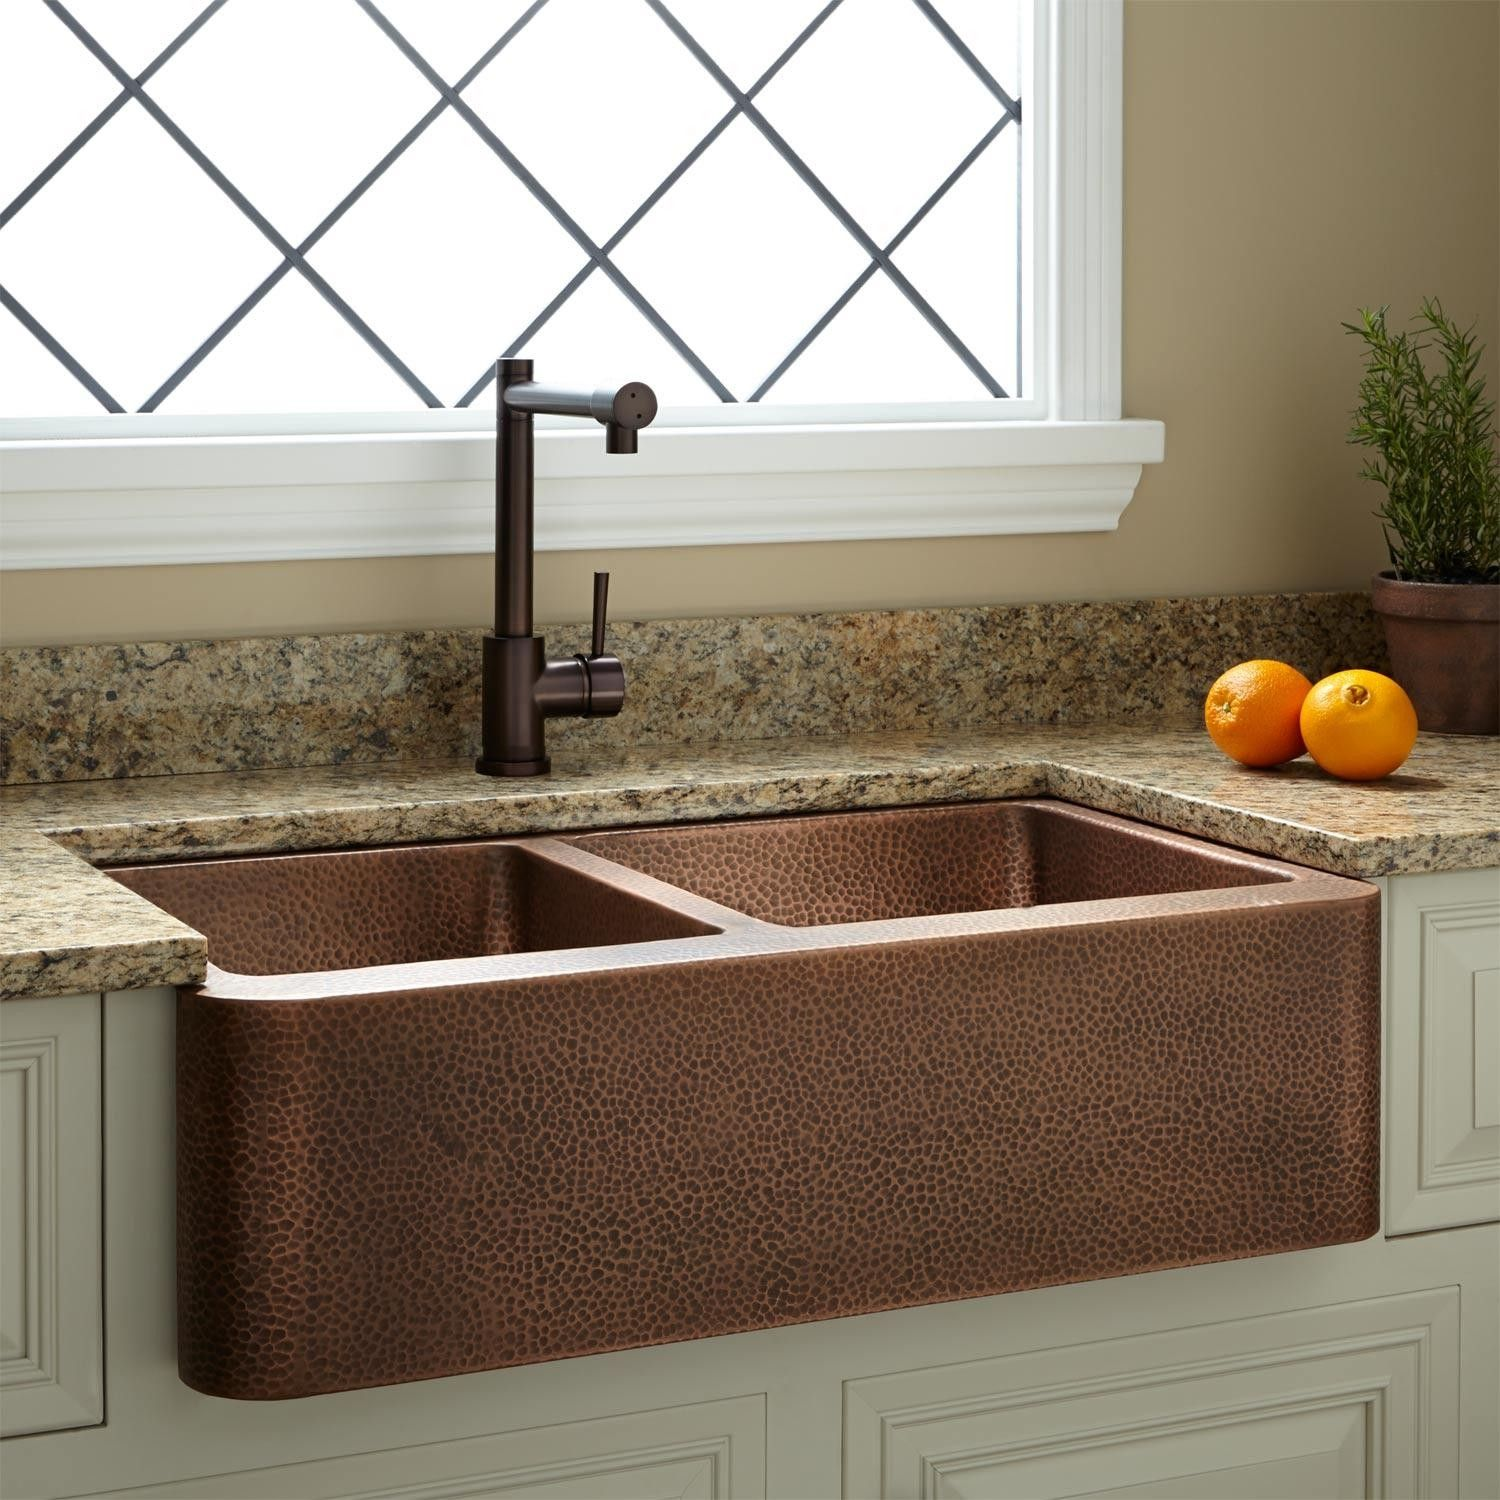 33 Hammered Copper 60 40 Offset Double Bowl Farmhouse Sink